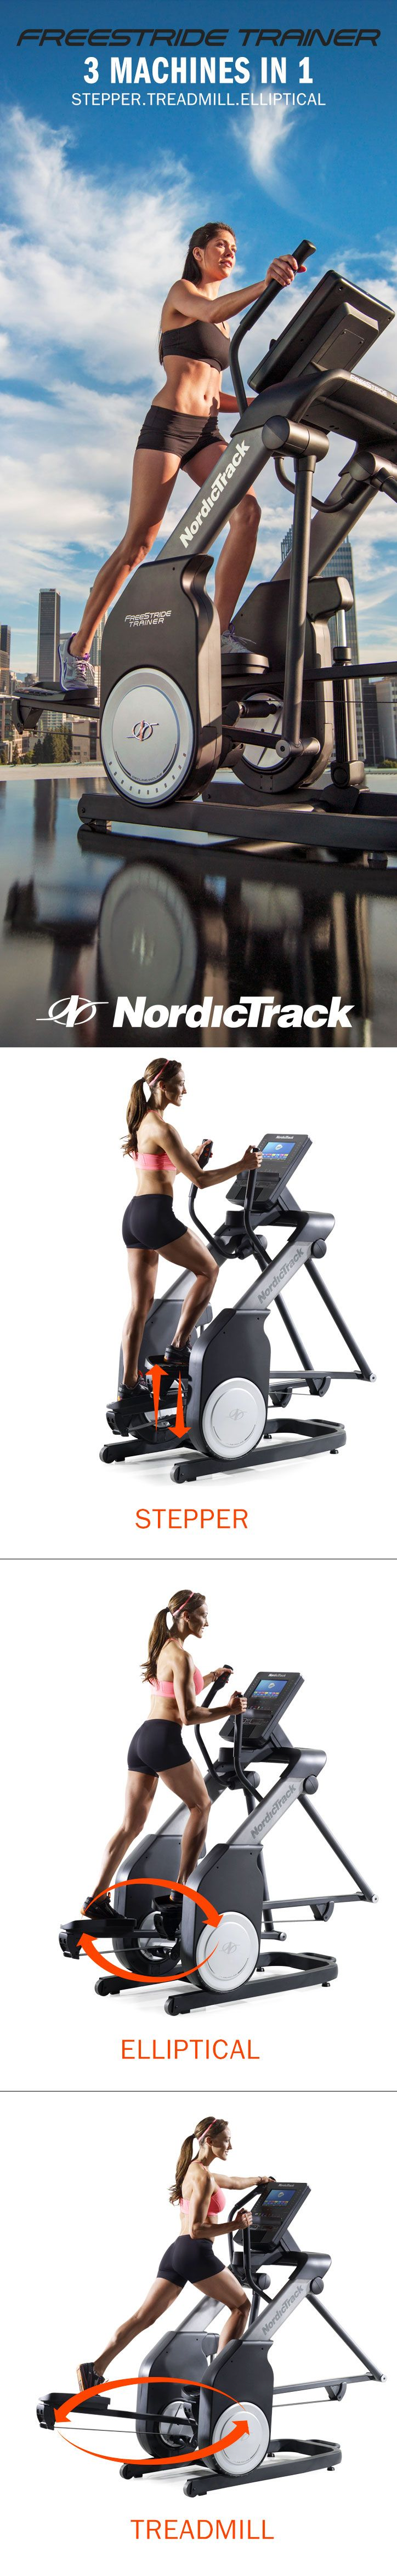 dating a gym trainer They kept the trainer, though, as he had among the best sales numbers at the gym one high-end gym that i was working at tried to incentivize us to stay on-site all day by building a sleeping room for the personal trainers, complete with bunk beds.